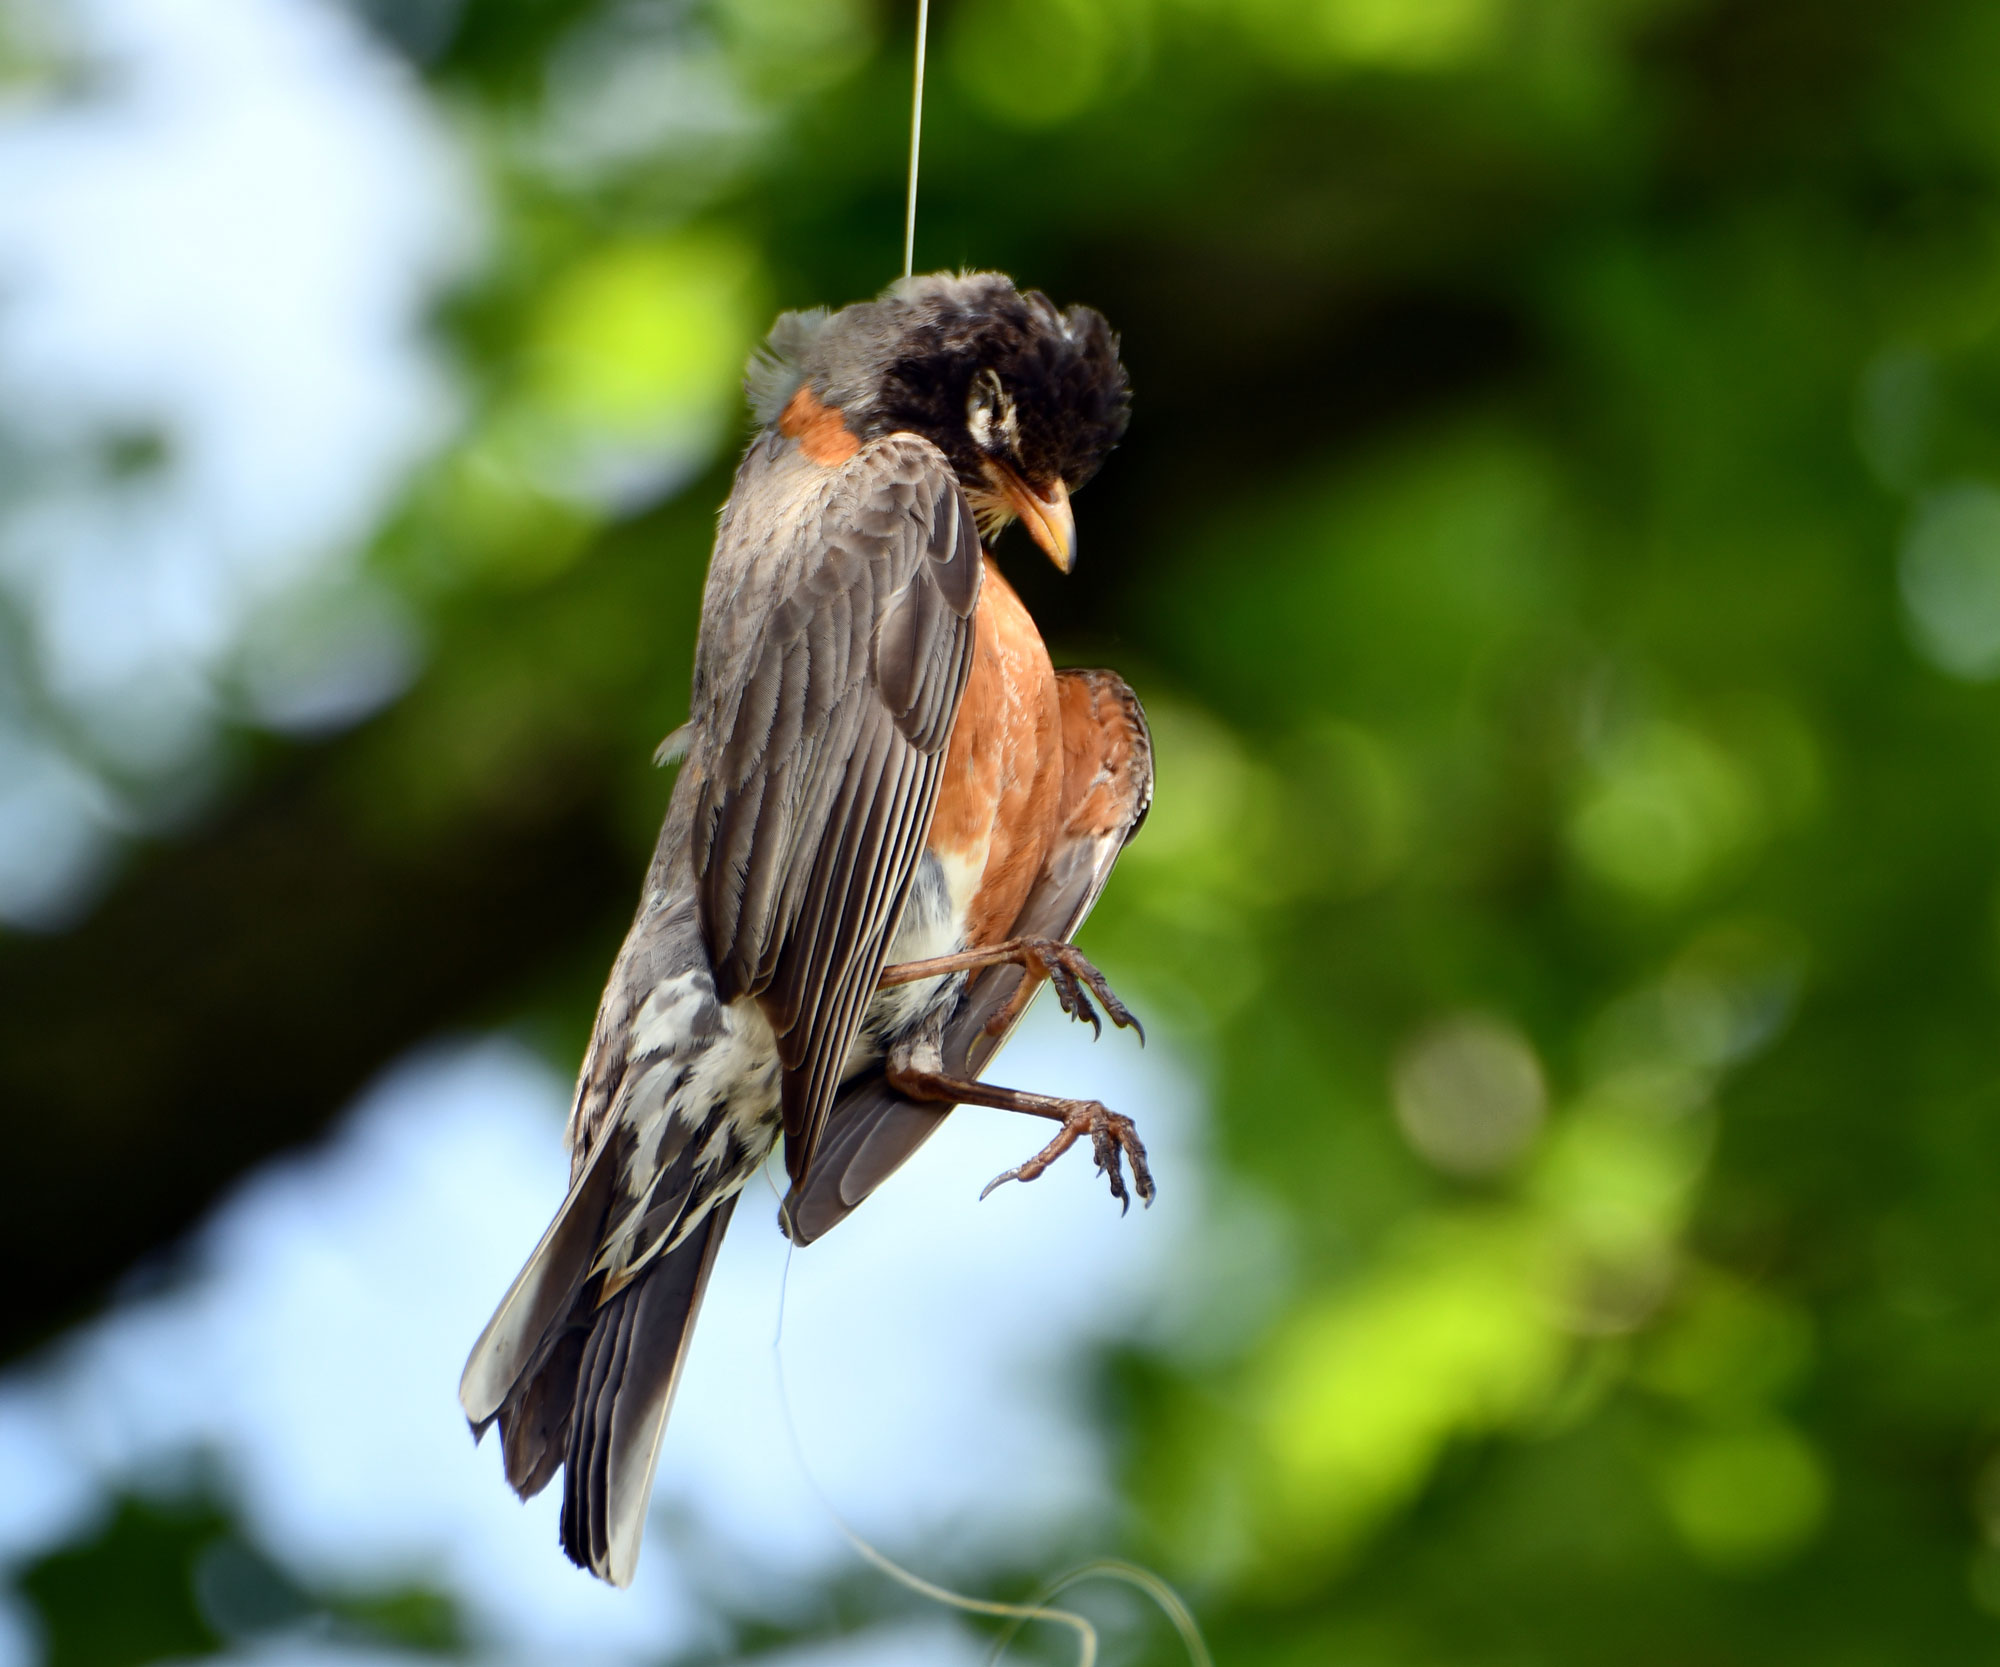 Photo for: This Robin Would Be Alive Right Now if the Fishing Line Was Properly Disposed Of